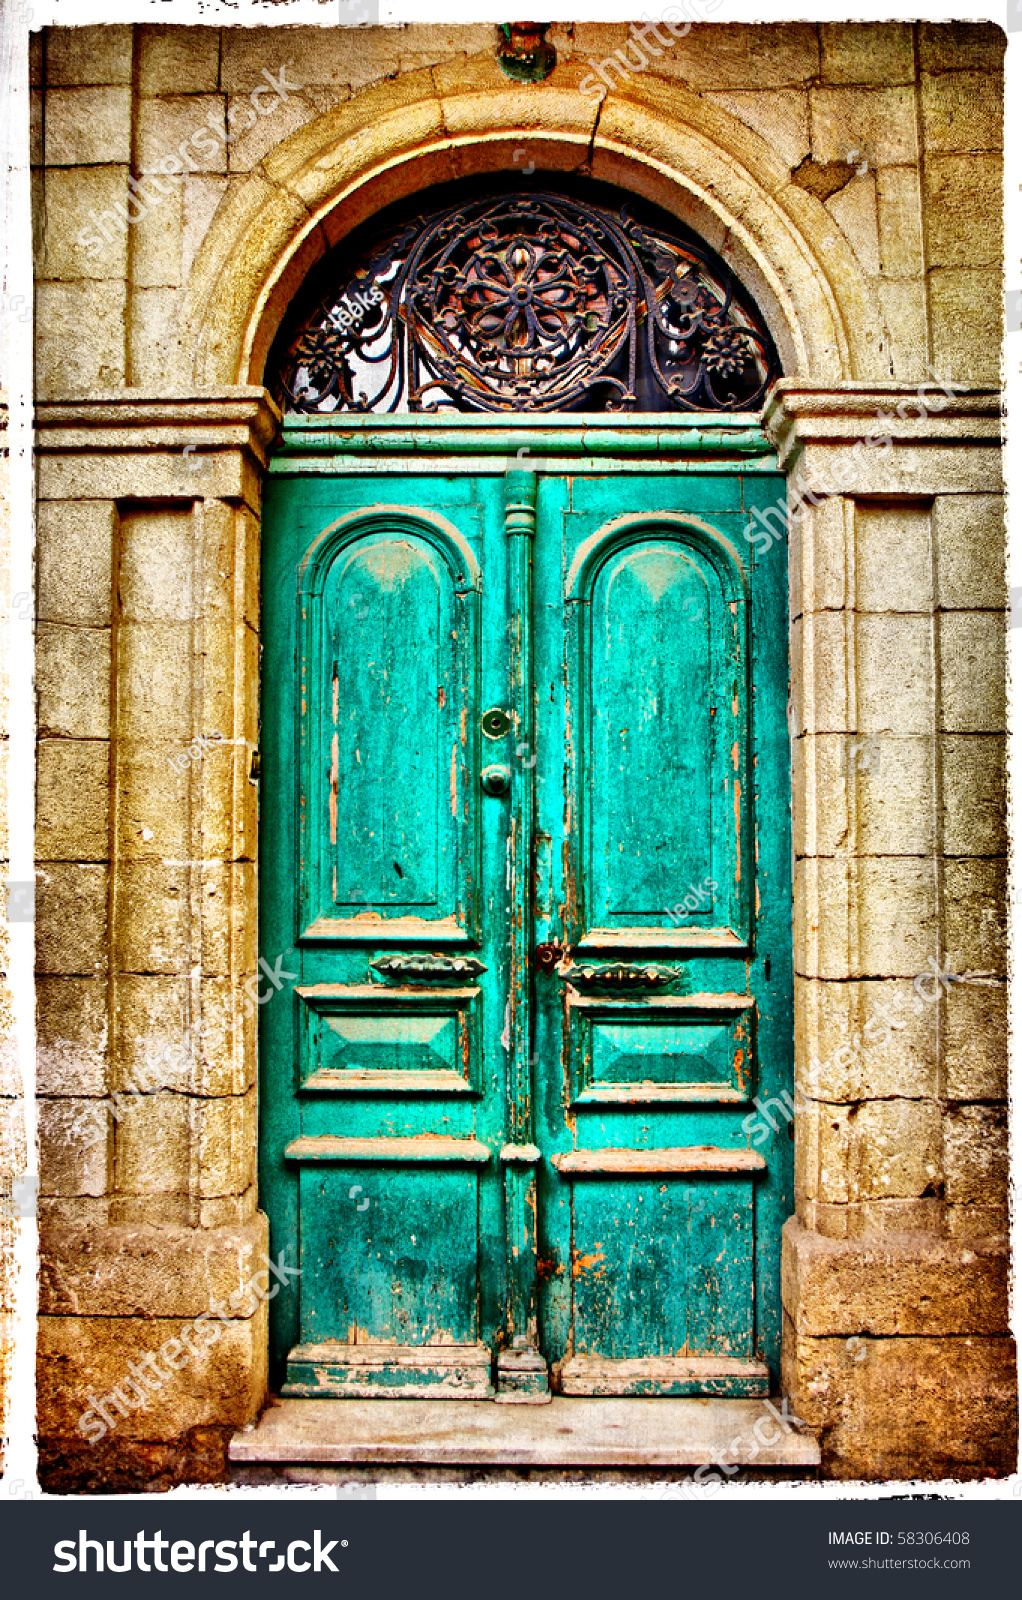 Old Doors Greece Artistic Toned Picture Stock Illustration